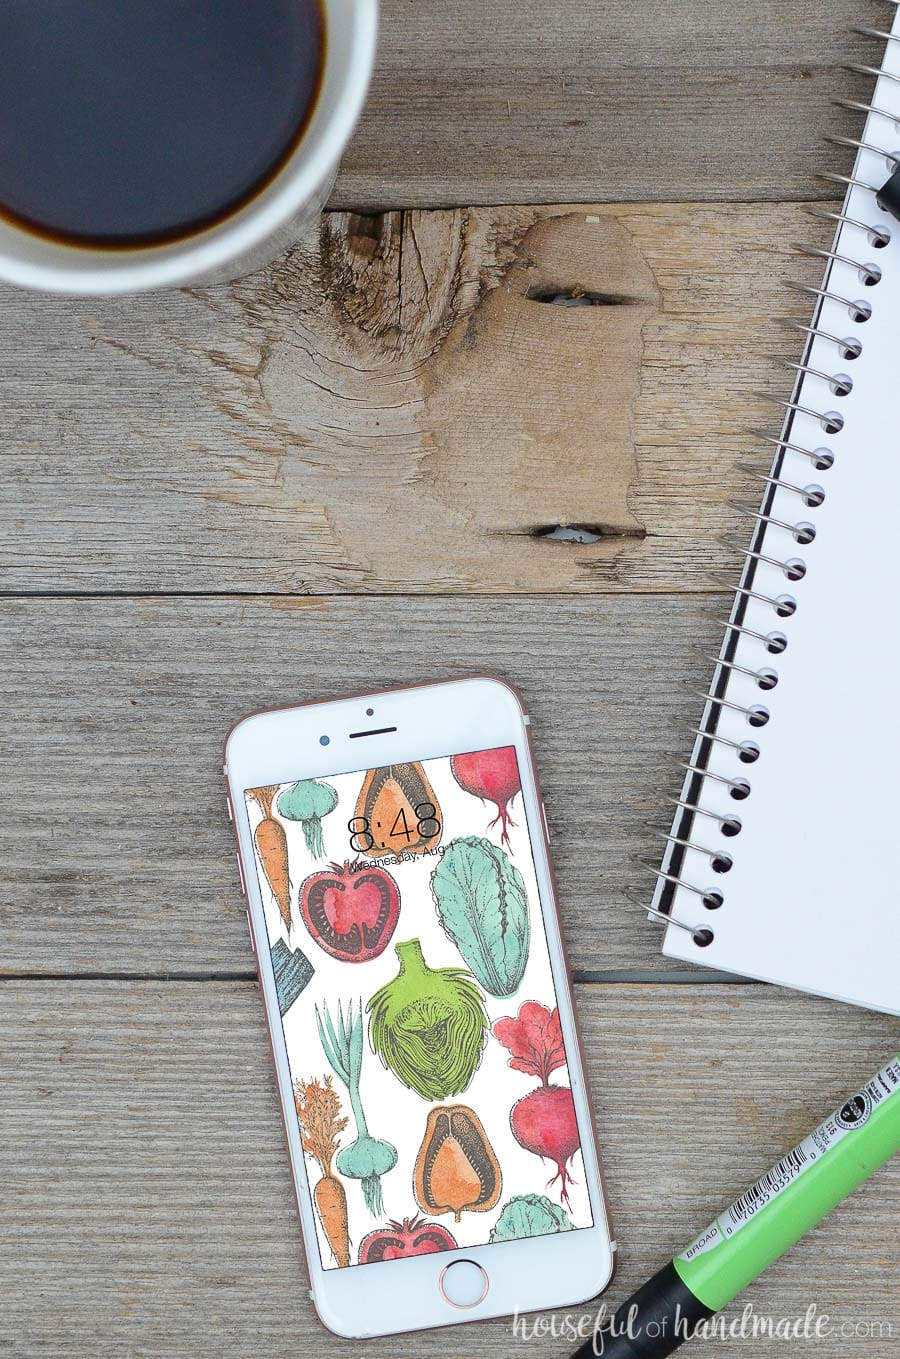 White iPhone smartphone with colorful vegetable design digital wallpaper on it. Phone is laying on a wood background with sketchbook and cup of coffee next to it.